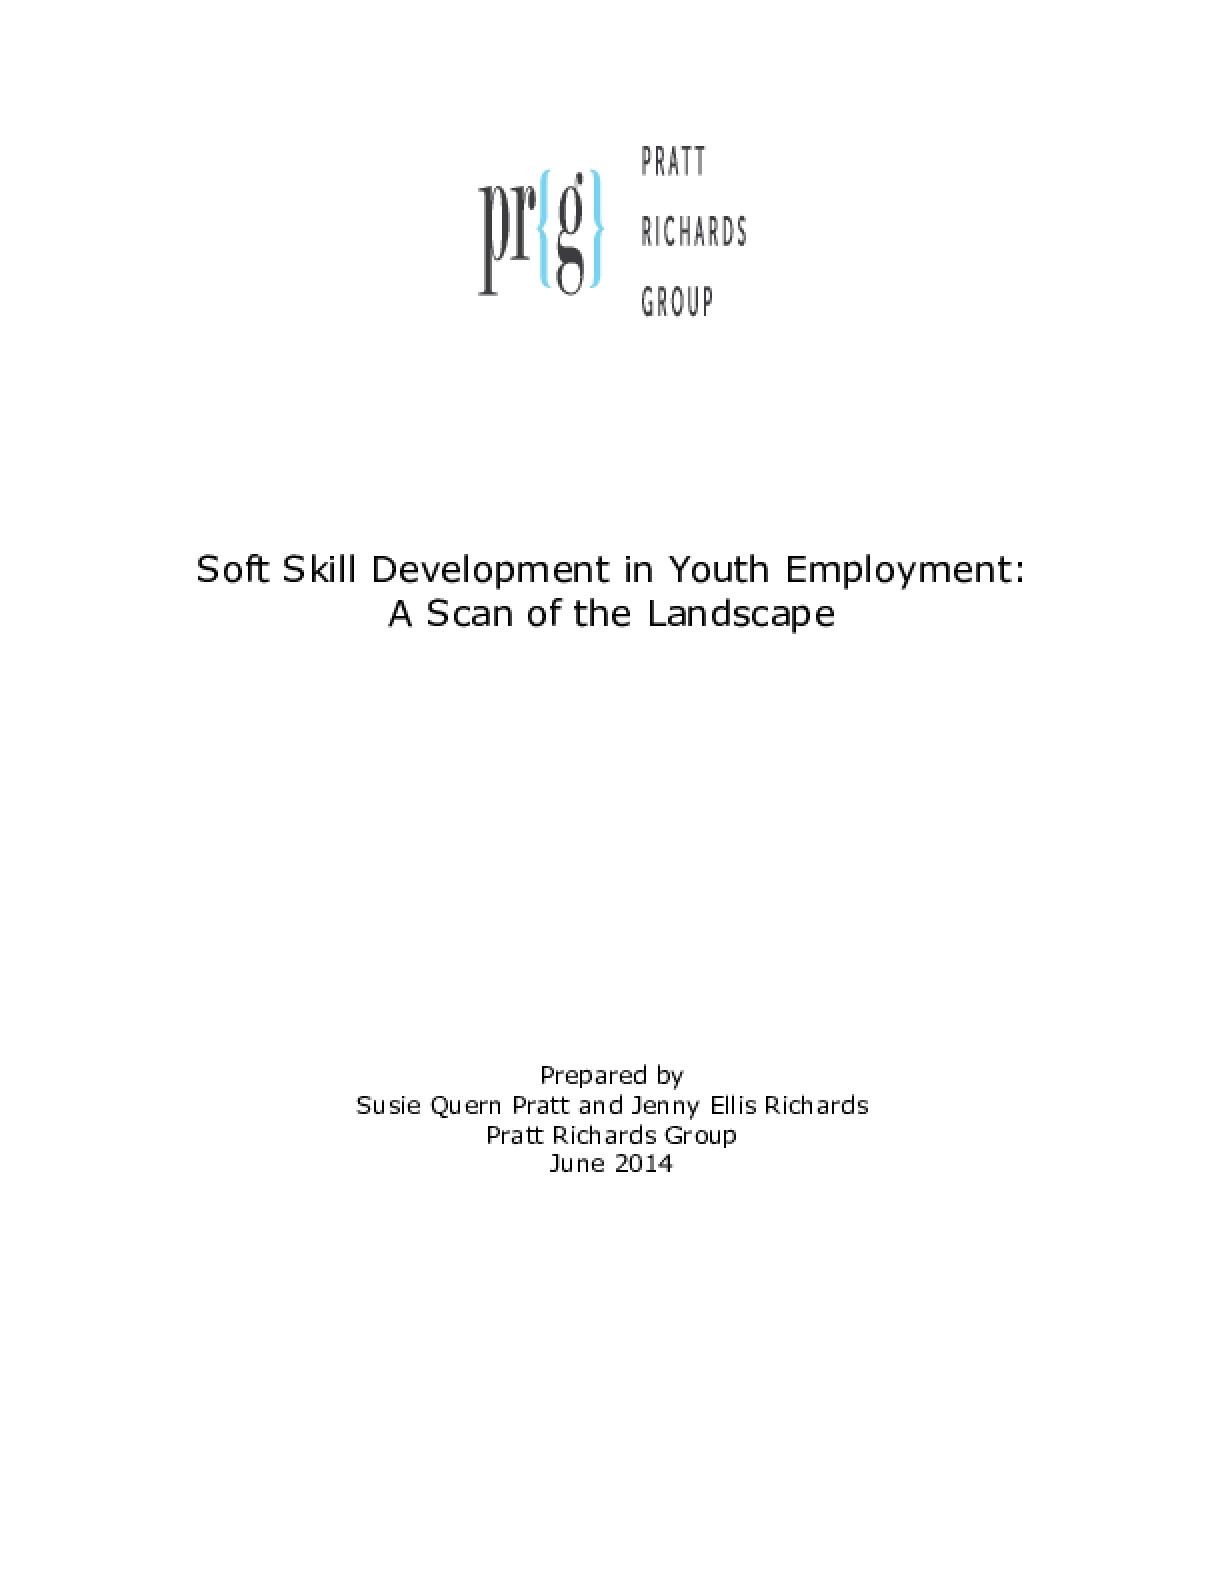 Soft Skill Development in Youth Employment : A  Scan of the Landscape